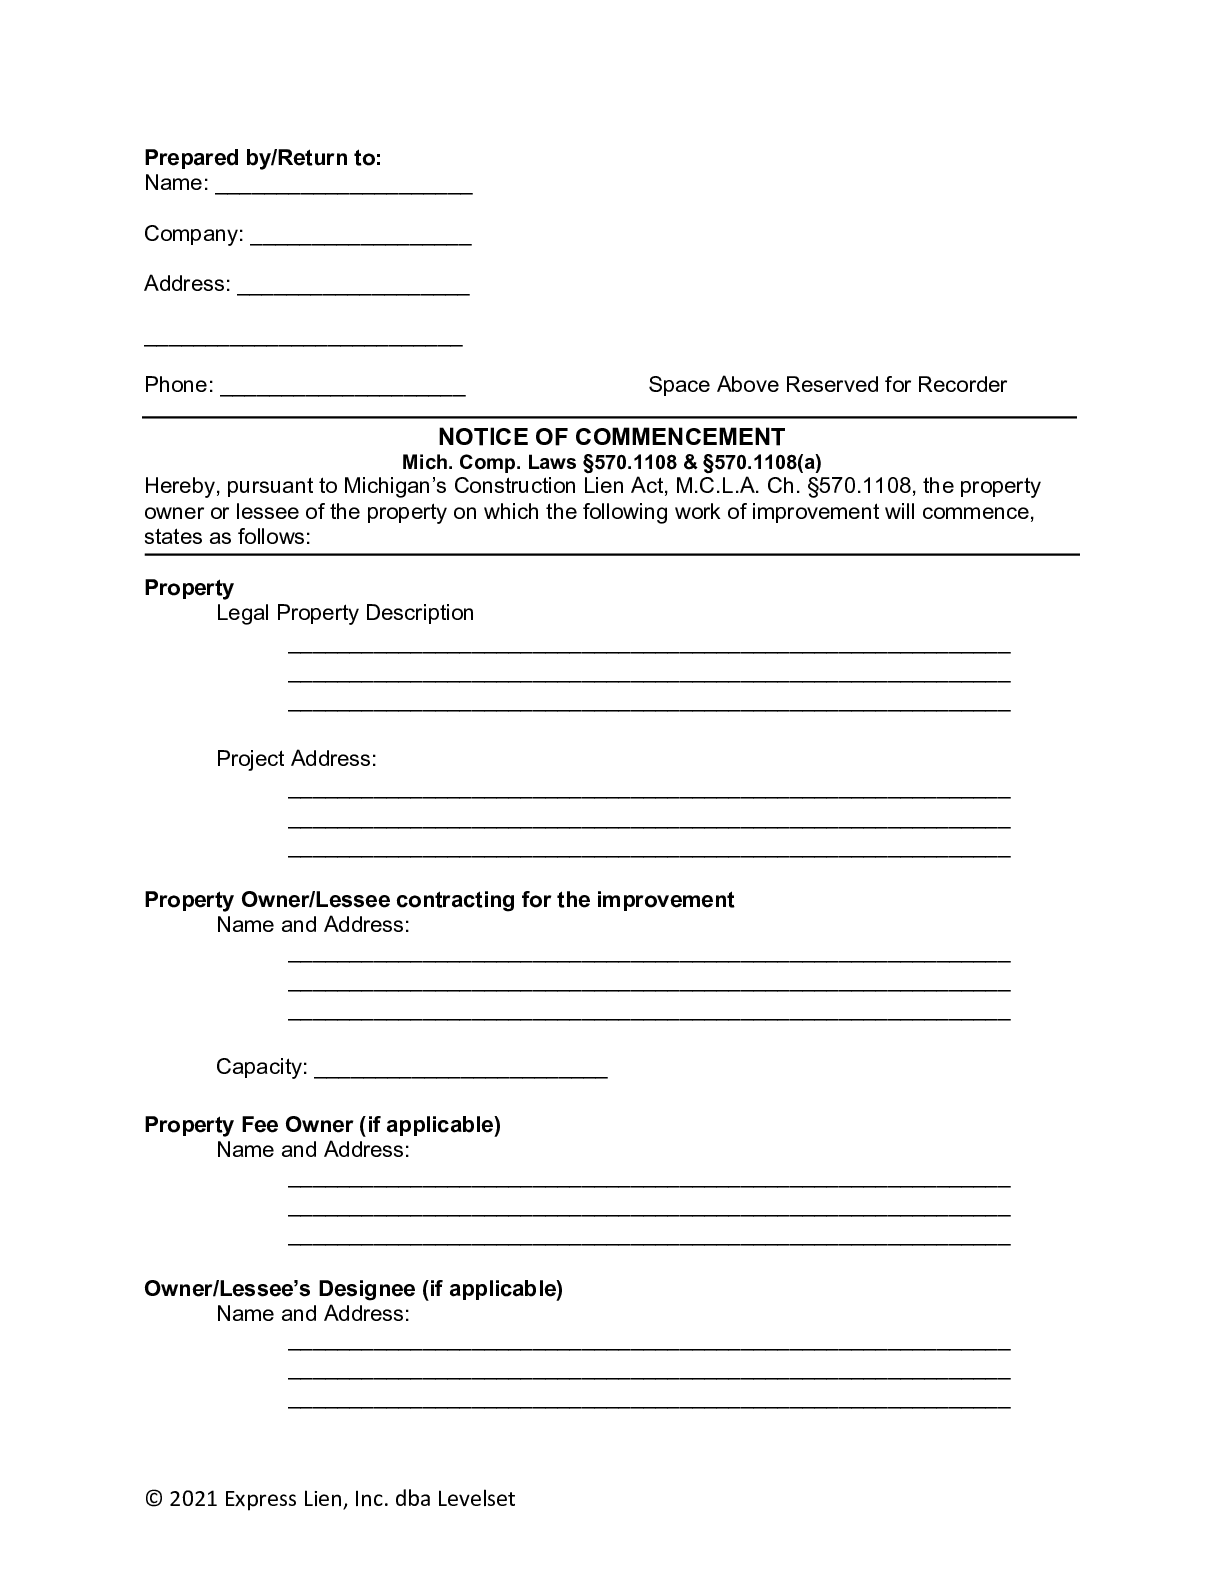 Michigan Notice of Commencement Form - free from